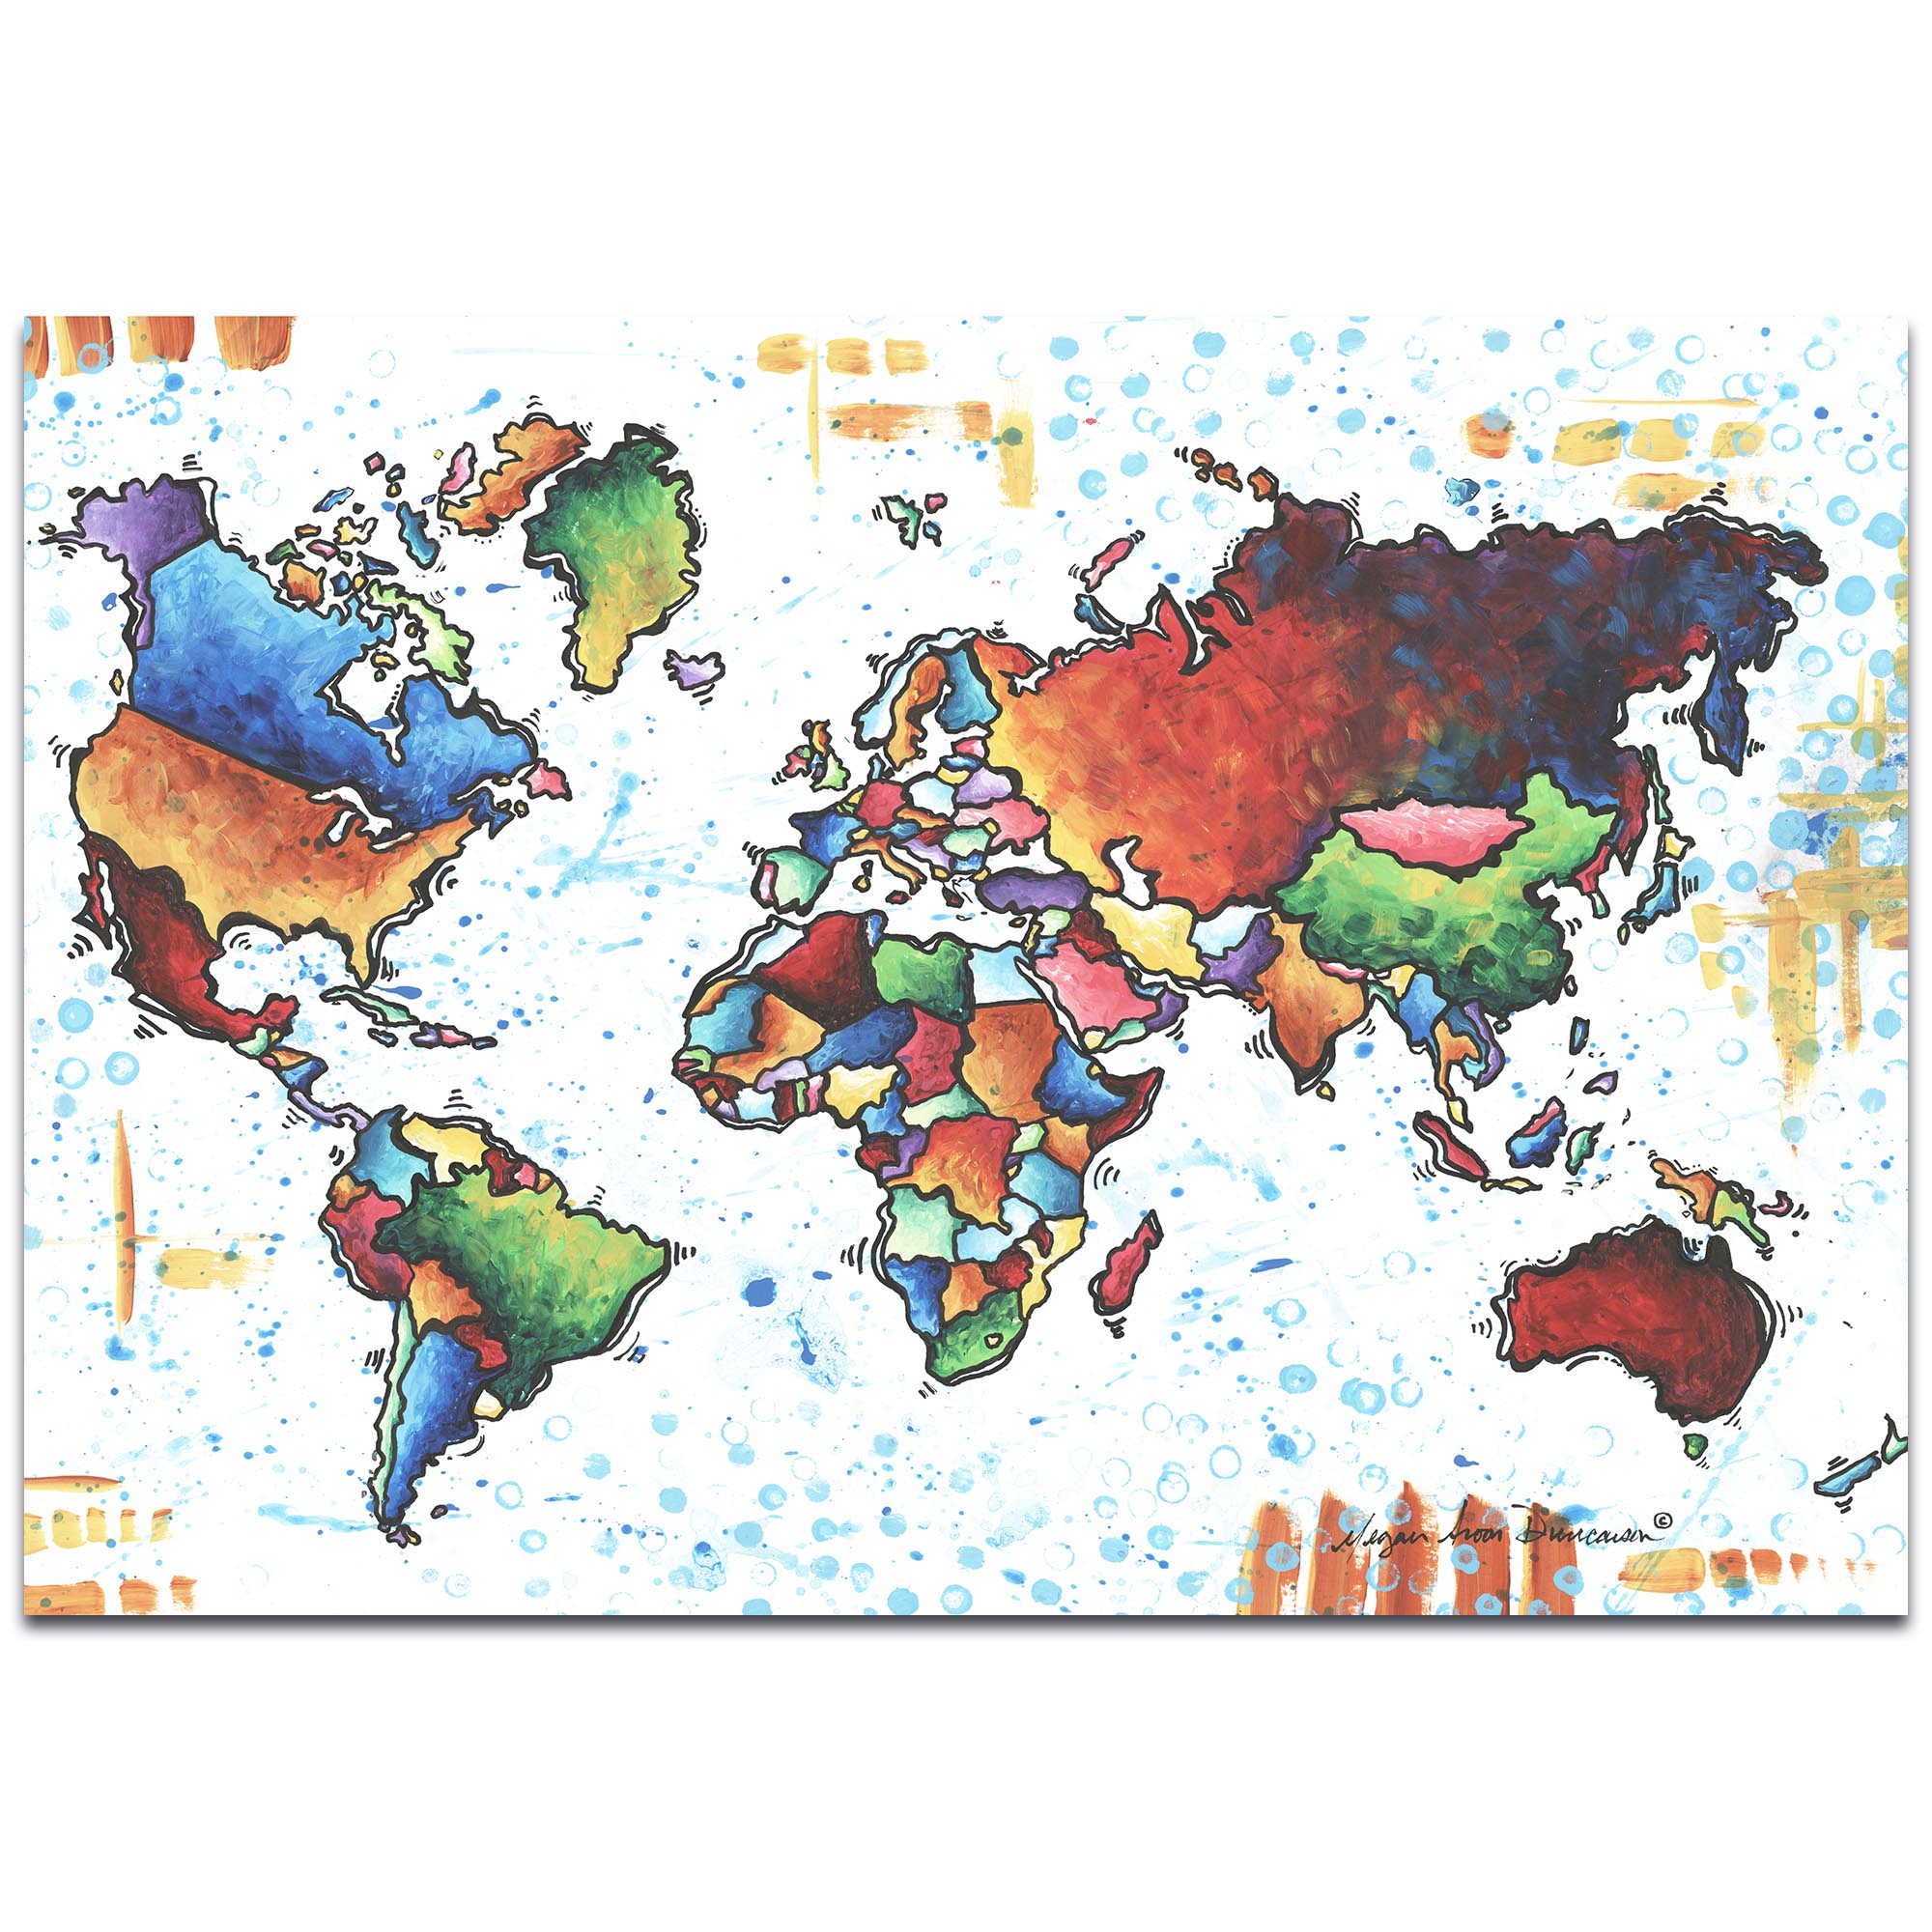 Rainbow Map 'A World of Diversity' - Modern Map Art on Metal or Acrylic